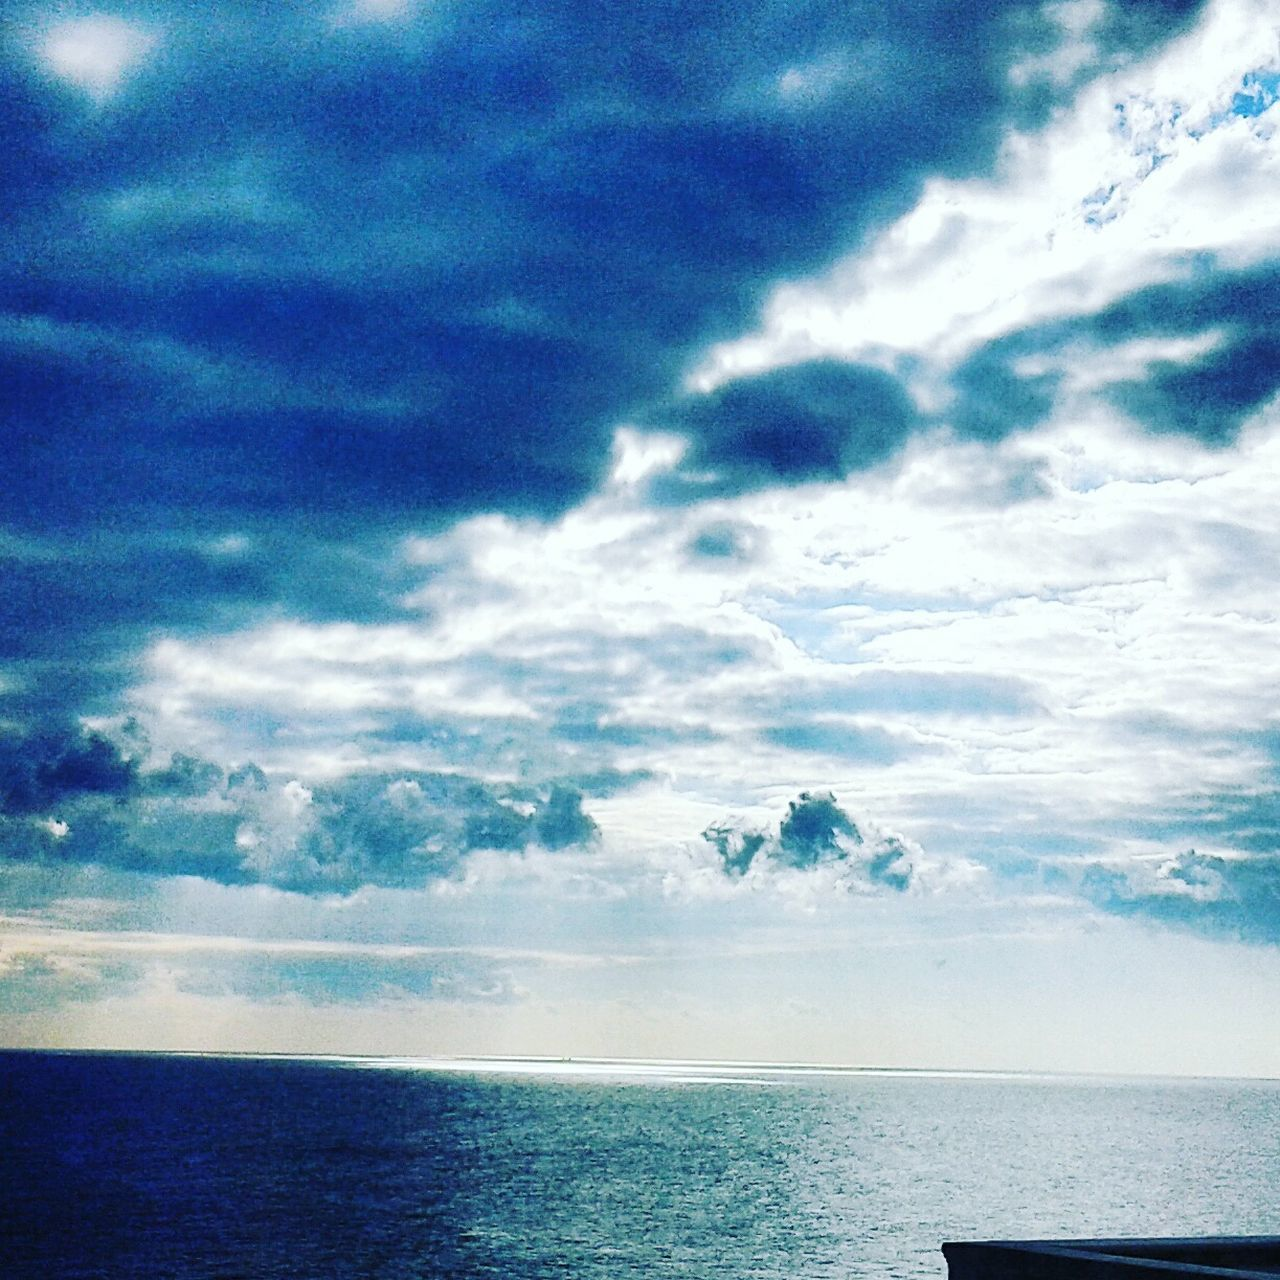 sea, horizon over water, sky, water, scenics, tranquility, tranquil scene, cloud - sky, nature, beauty in nature, no people, outdoors, day, horizon